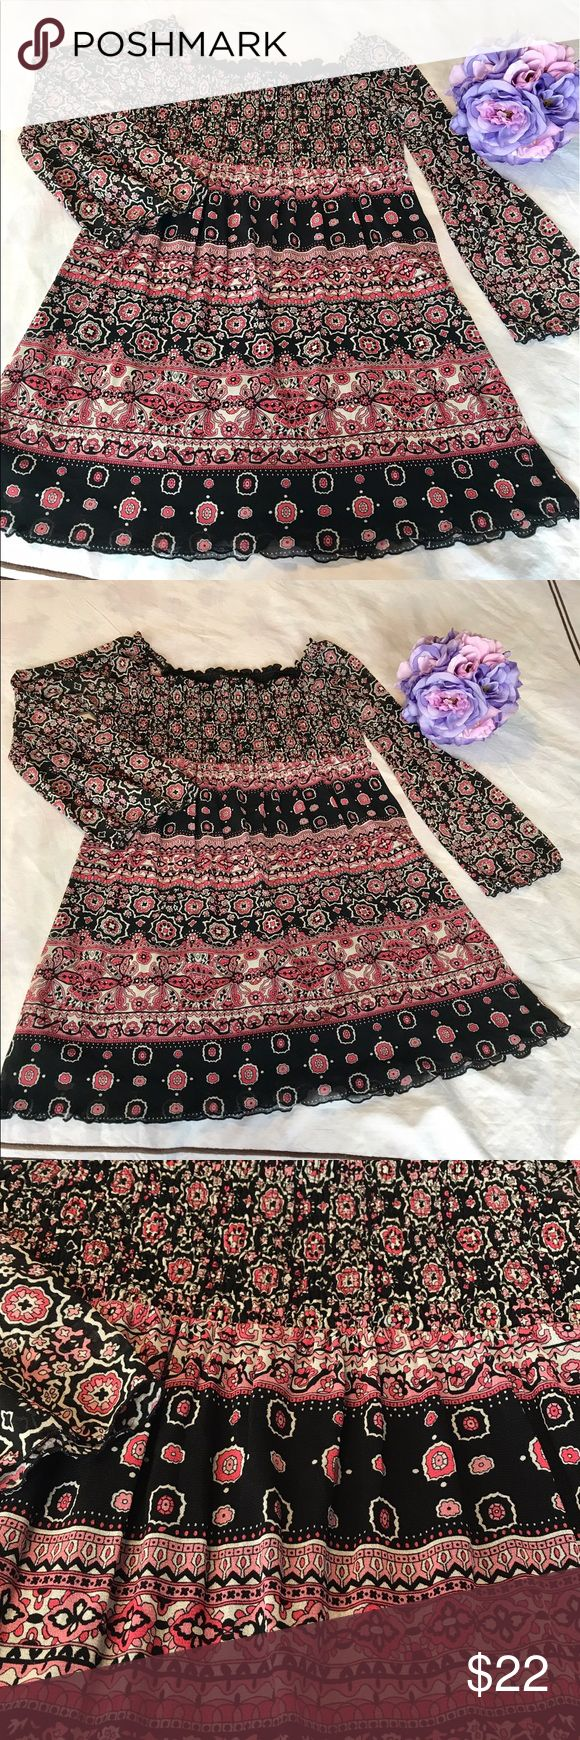 INC ELASTIC ON TOP PRINTED TUNIC L Super fun and beautiful tunic with elastic on the chest area, sheer sleeves and flows from chest down. Lined and fabric is 100% Nylon. Pairs very well with jeans and leggings INC International Concepts Tops Tunics